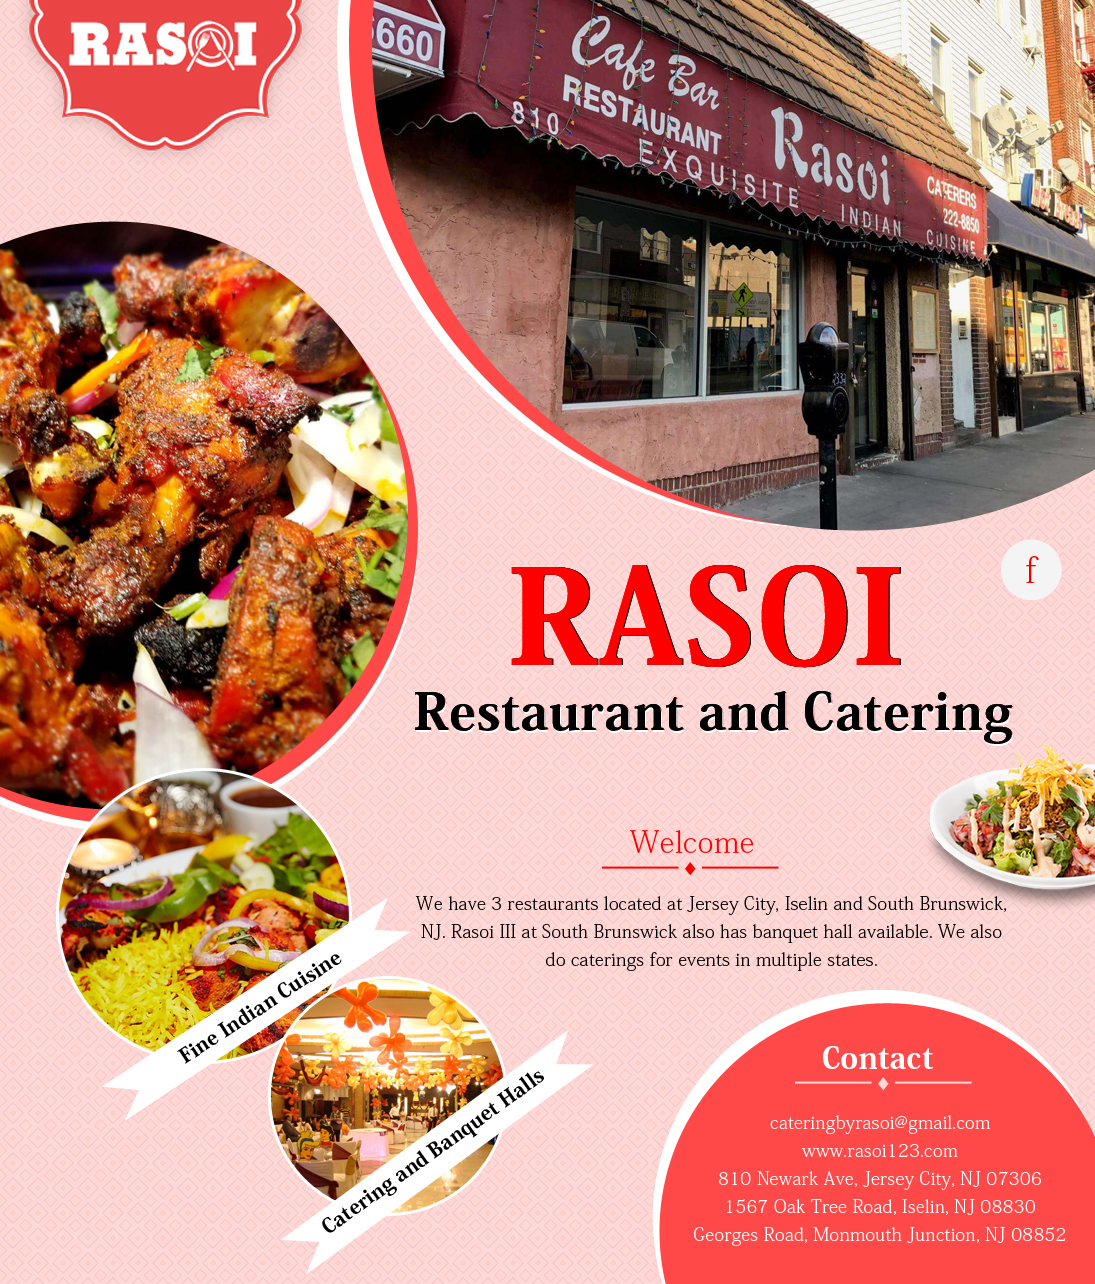 Outstanding Rasoi Indian Restaurant And Catering In Jersey City Nj Download Free Architecture Designs Licukmadebymaigaardcom